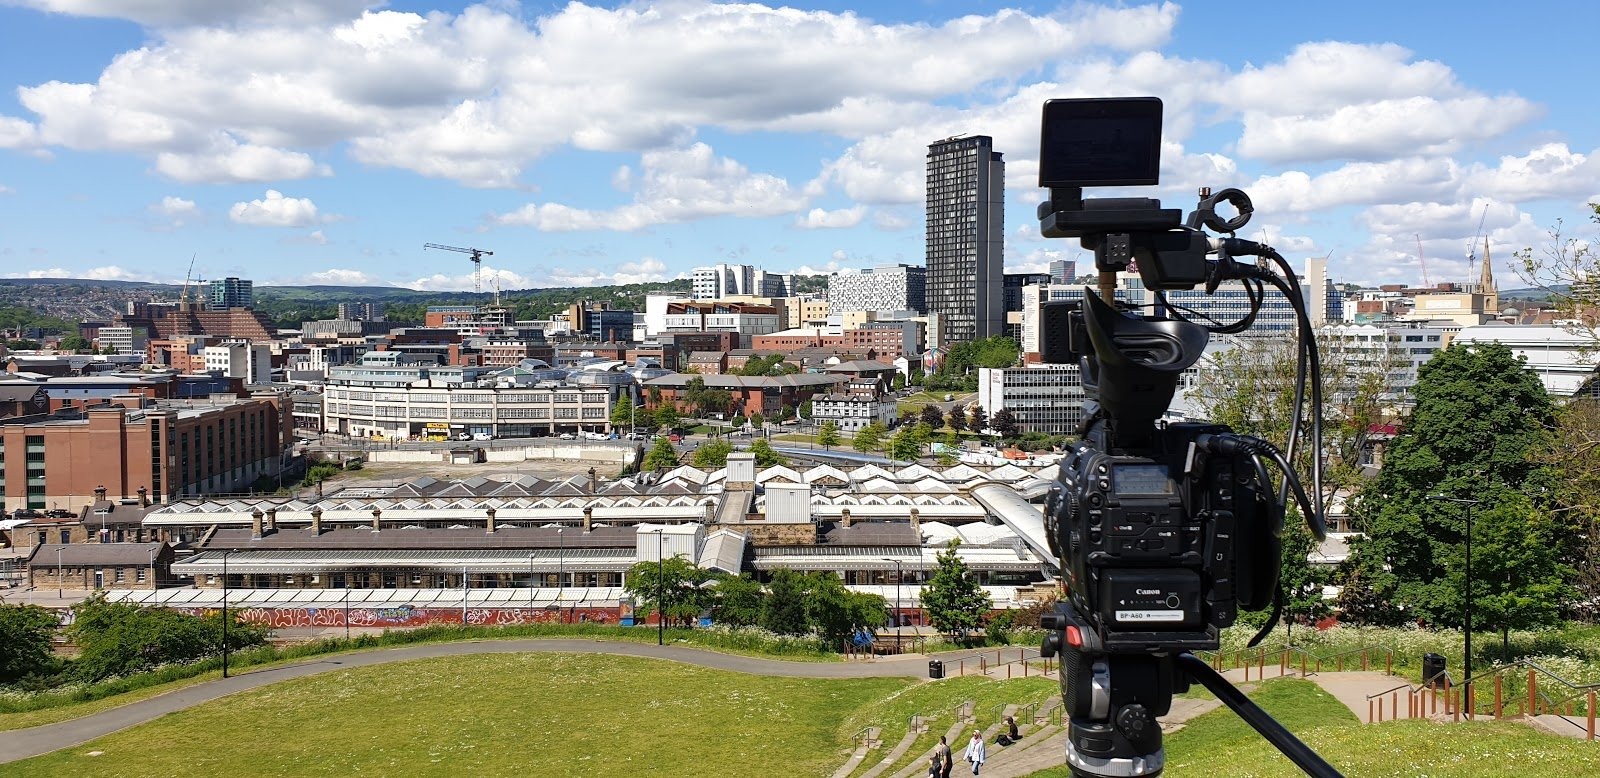 Sheffield on Screen: Communicating Our Local Culture Through Film and Video